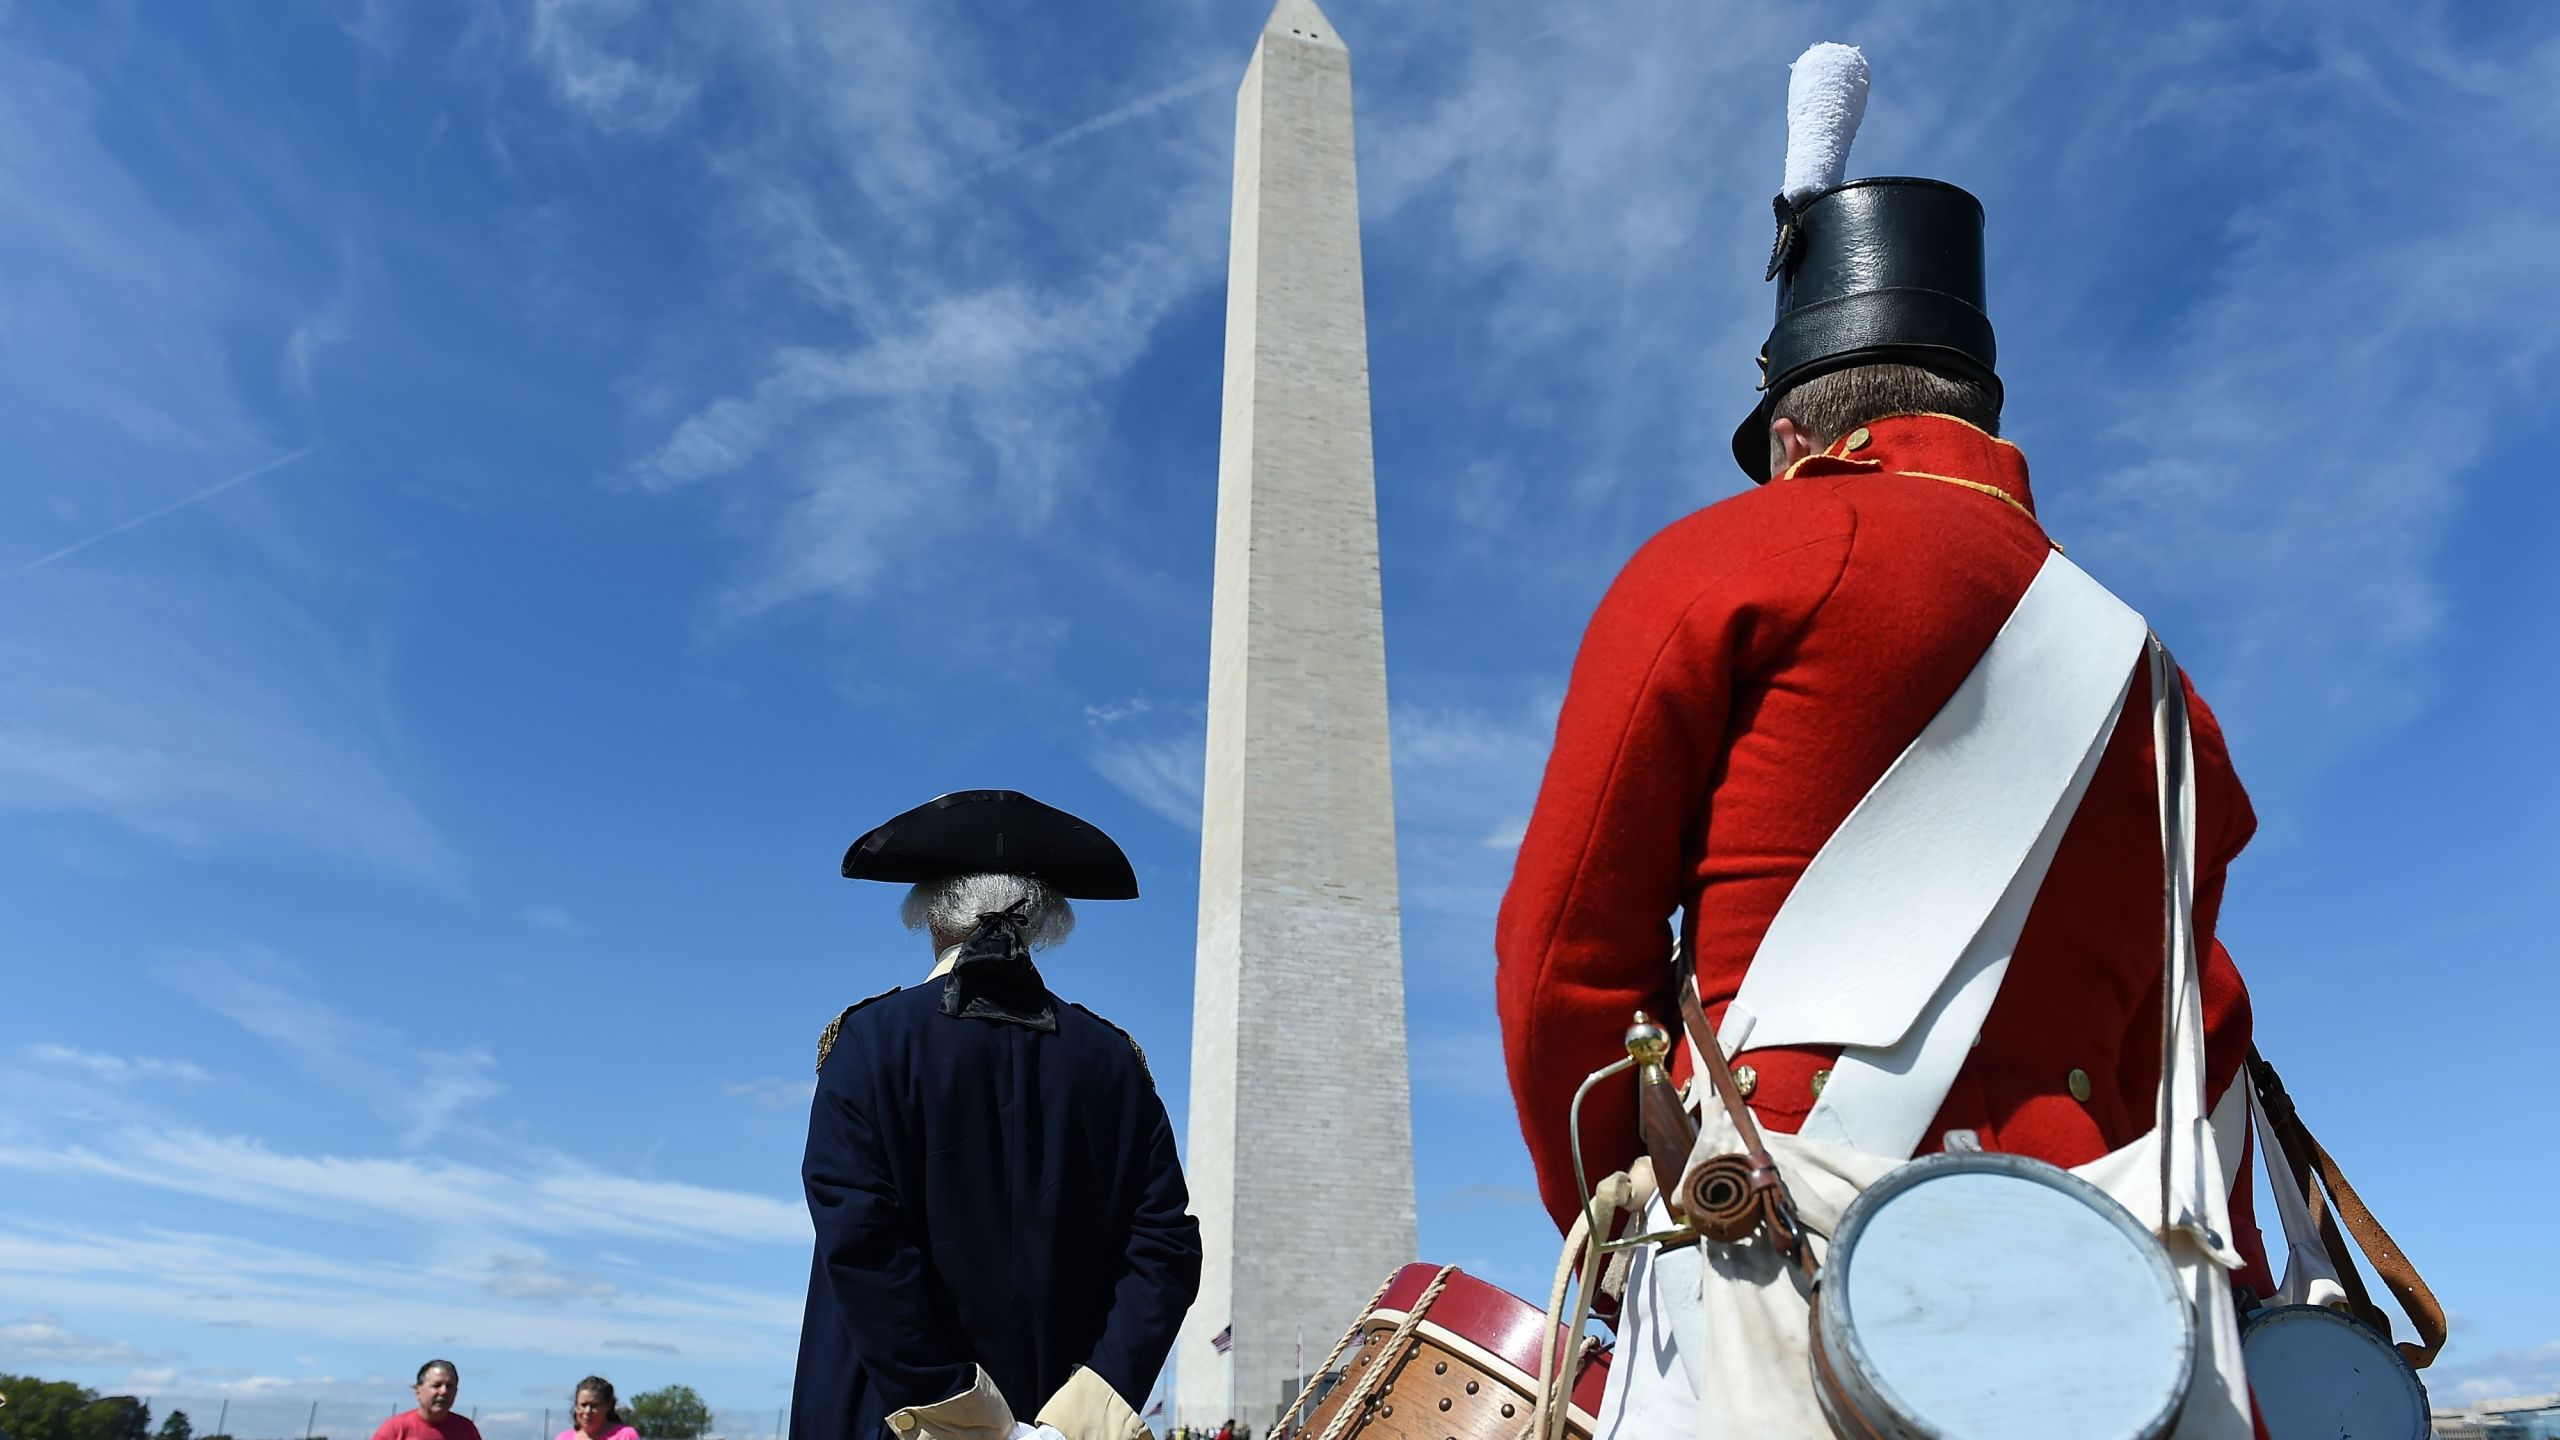 People dressed in historical costumes participate in the reopening of the Washington Monument on Sep. 19, 2019, in Washington, DC. (Credit: Olivier Douliery/AFP/Getty Images)